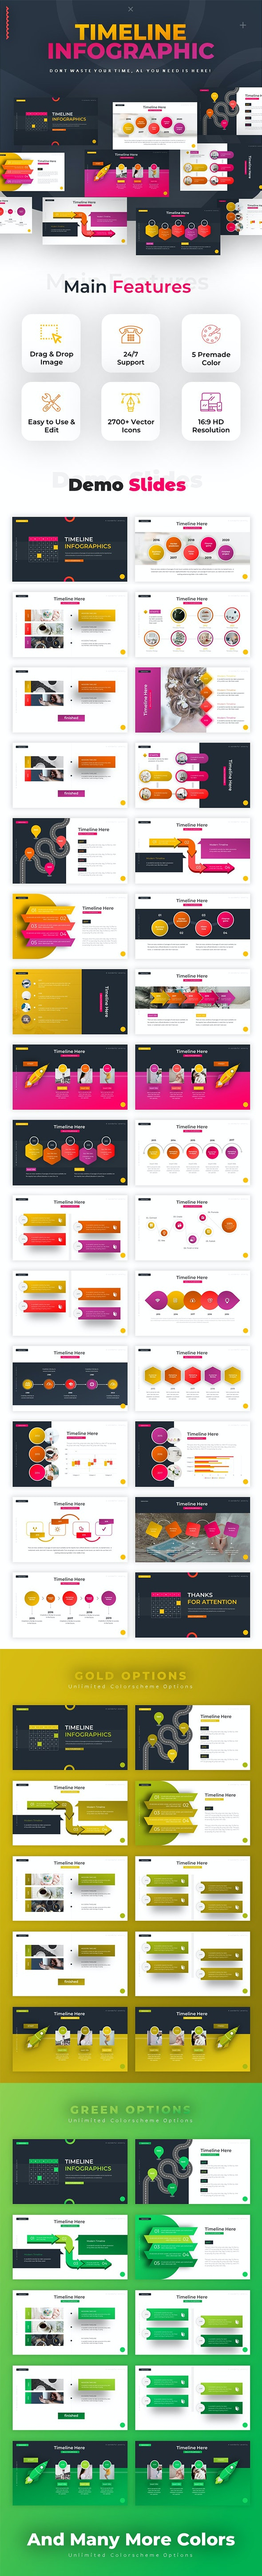 Timeline Infographic Powerpoint - PowerPoint Templates Presentation Templates